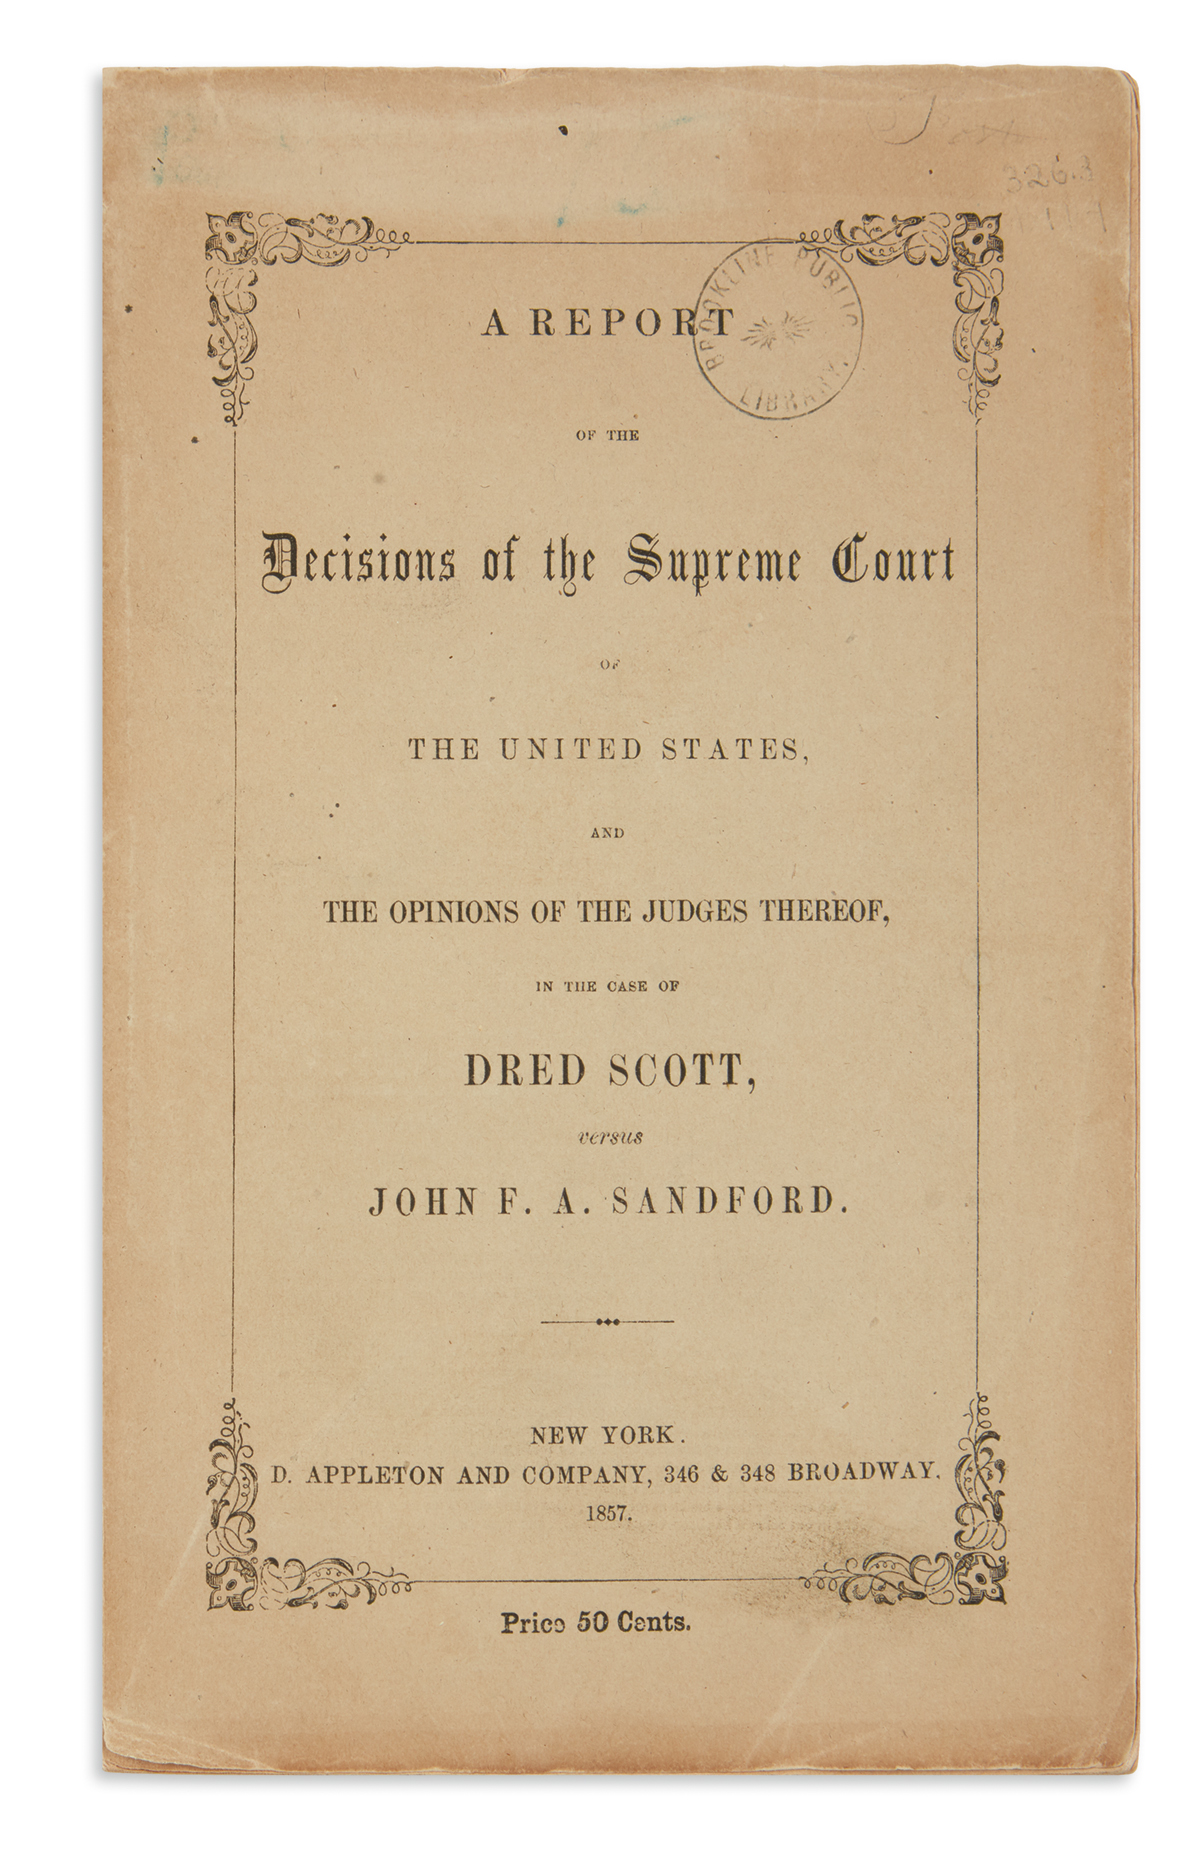 (SLAVERY AND ABOLITION.) Howard, Benjamin C. A Report of the Decision of the Supreme Court . . . in the Case of Dred Scott